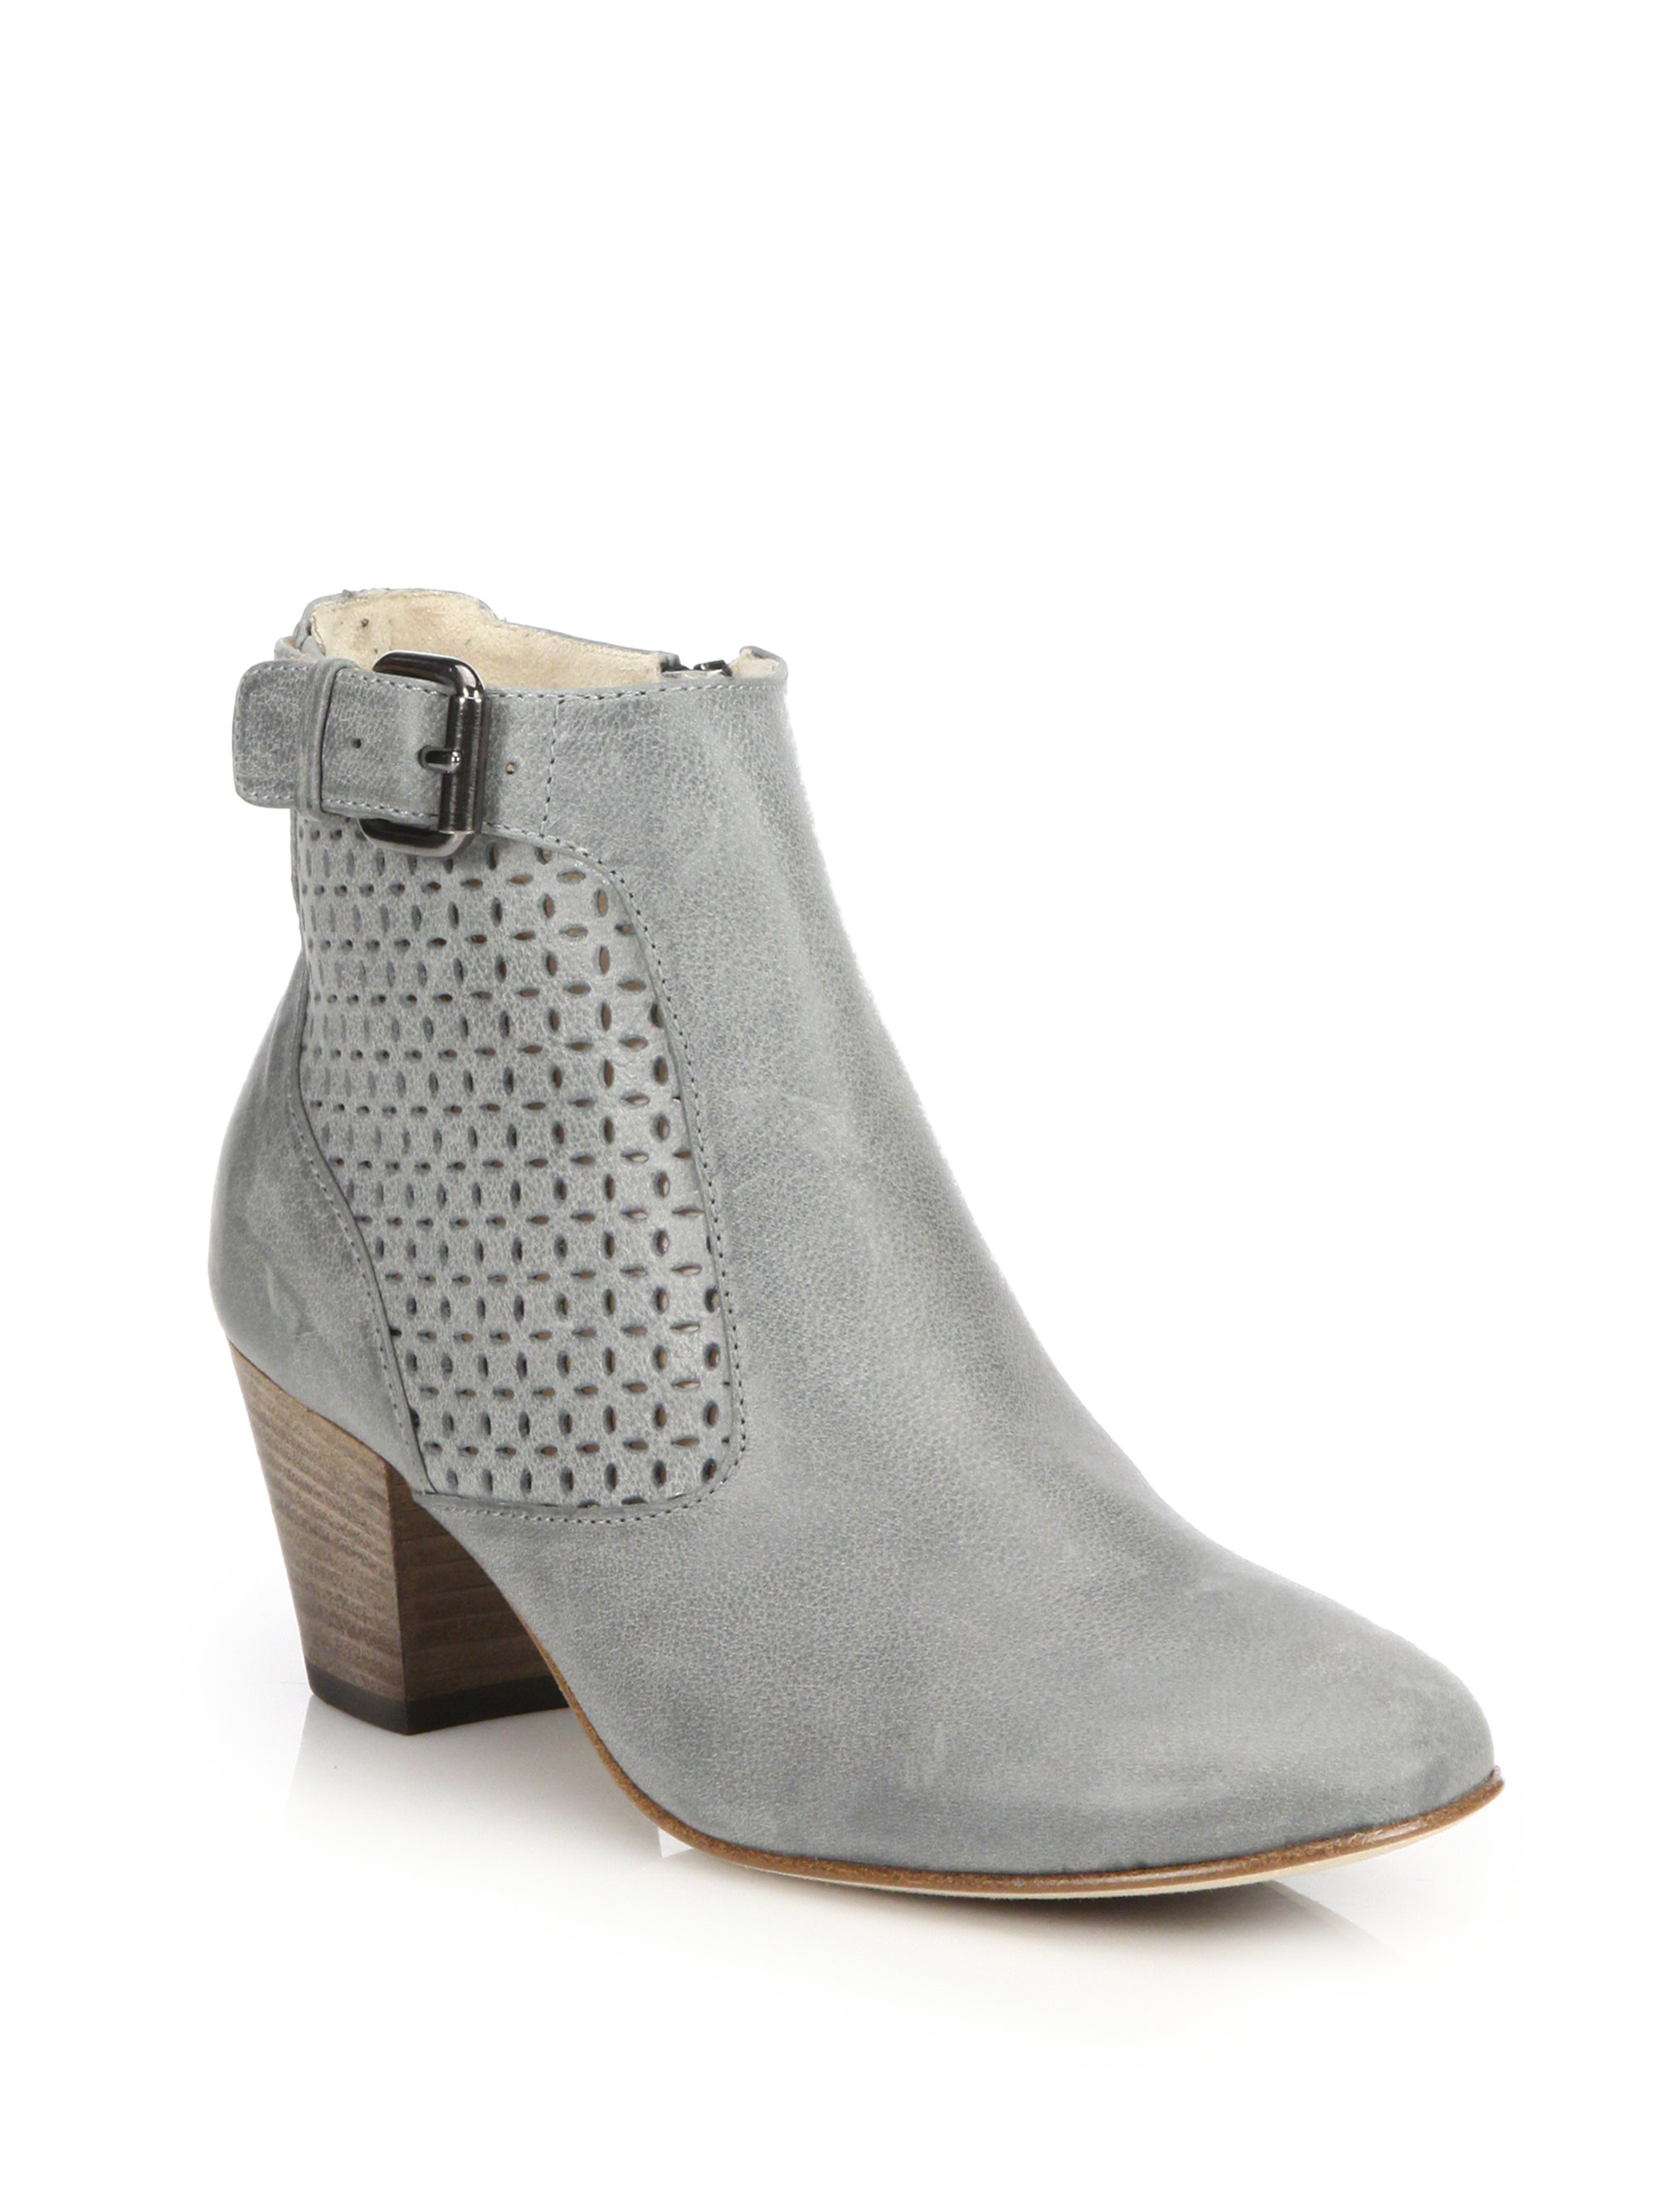 2d7f76298507 Lyst - Aquatalia Francie Perforated Leather Buckle Ankle .